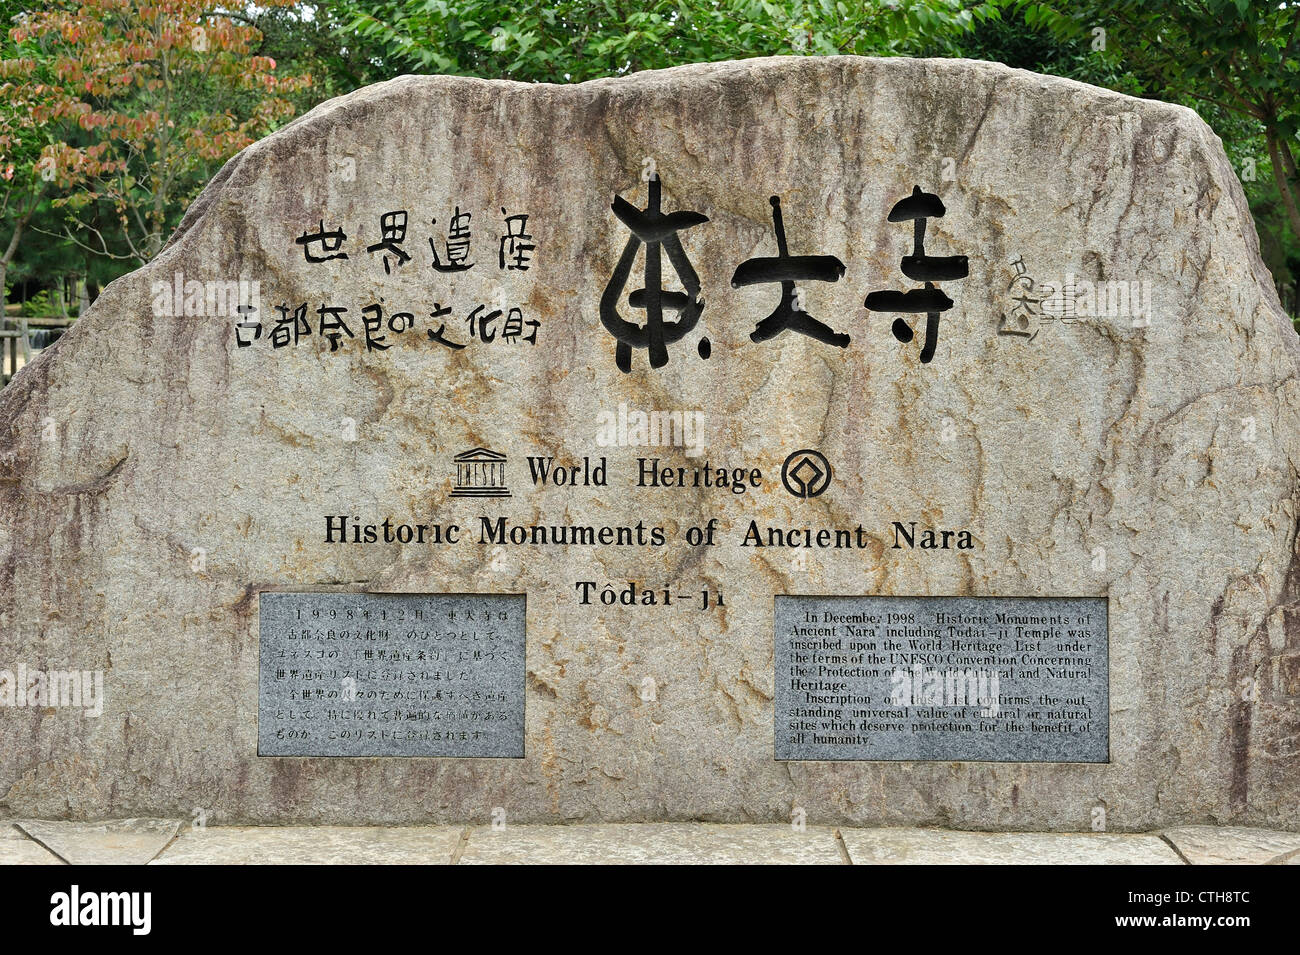 Memorial Stone, Nara-Kouen, Nara City, Nara Prefecture, Honshu, Japan - Stock Image